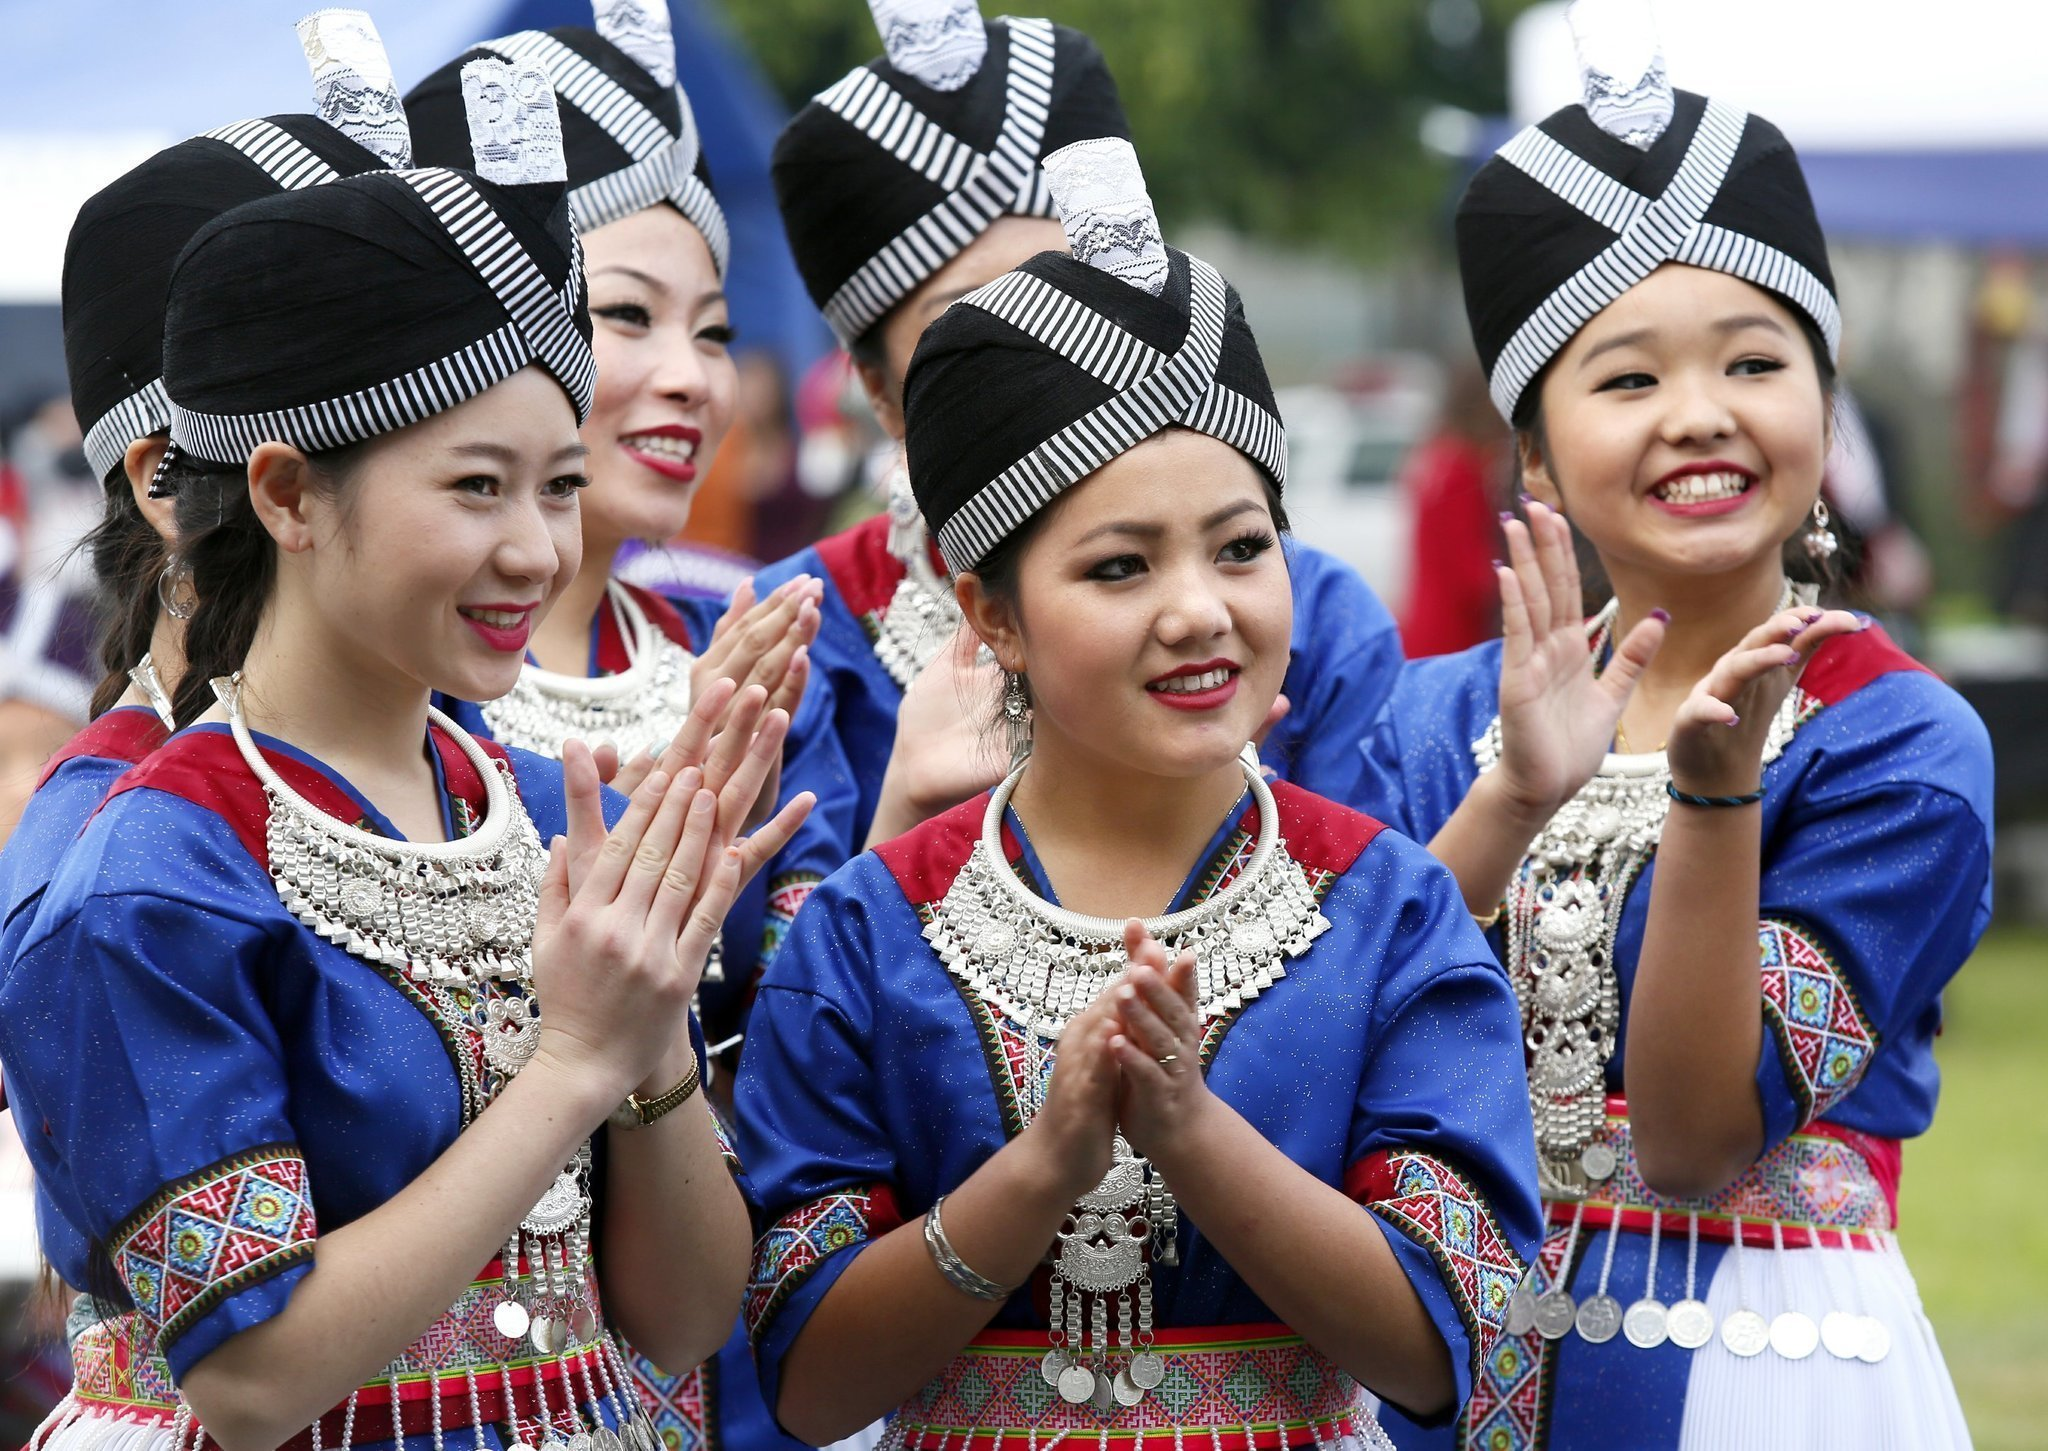 Hmong new year in 52 laos 2018 - YouTube |Hmong New Year